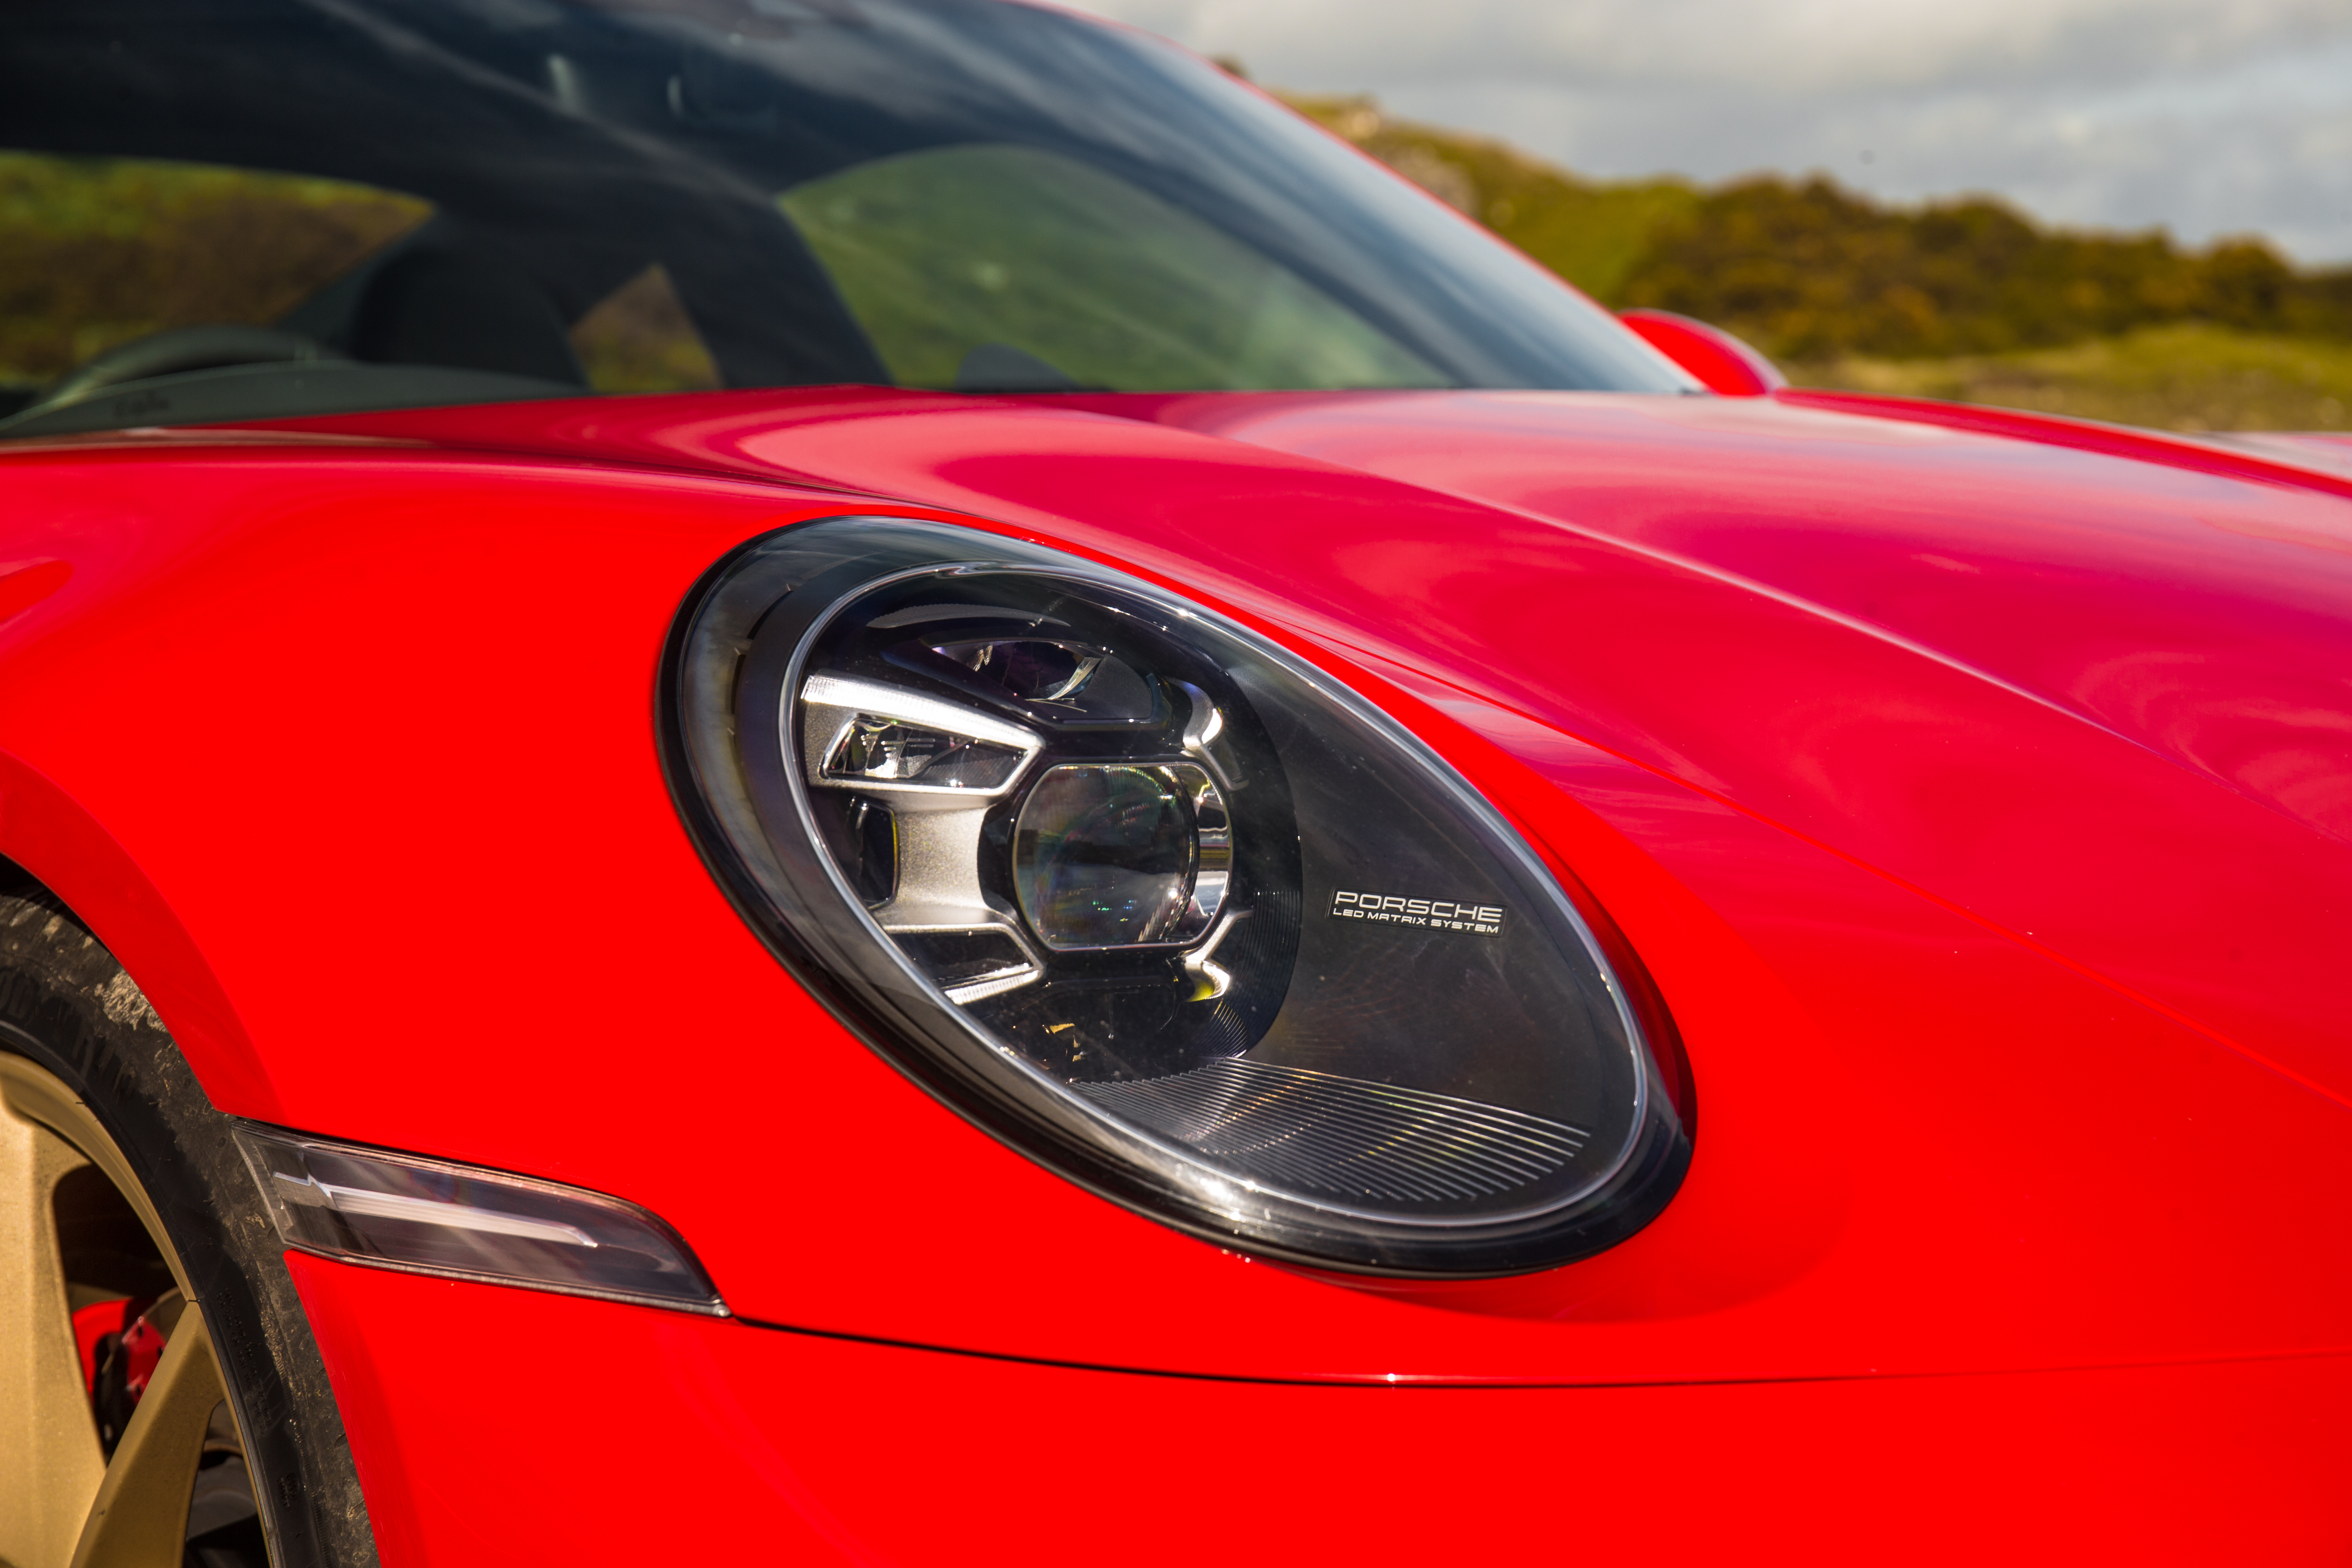 Oval headlights are a highlight on the new 911